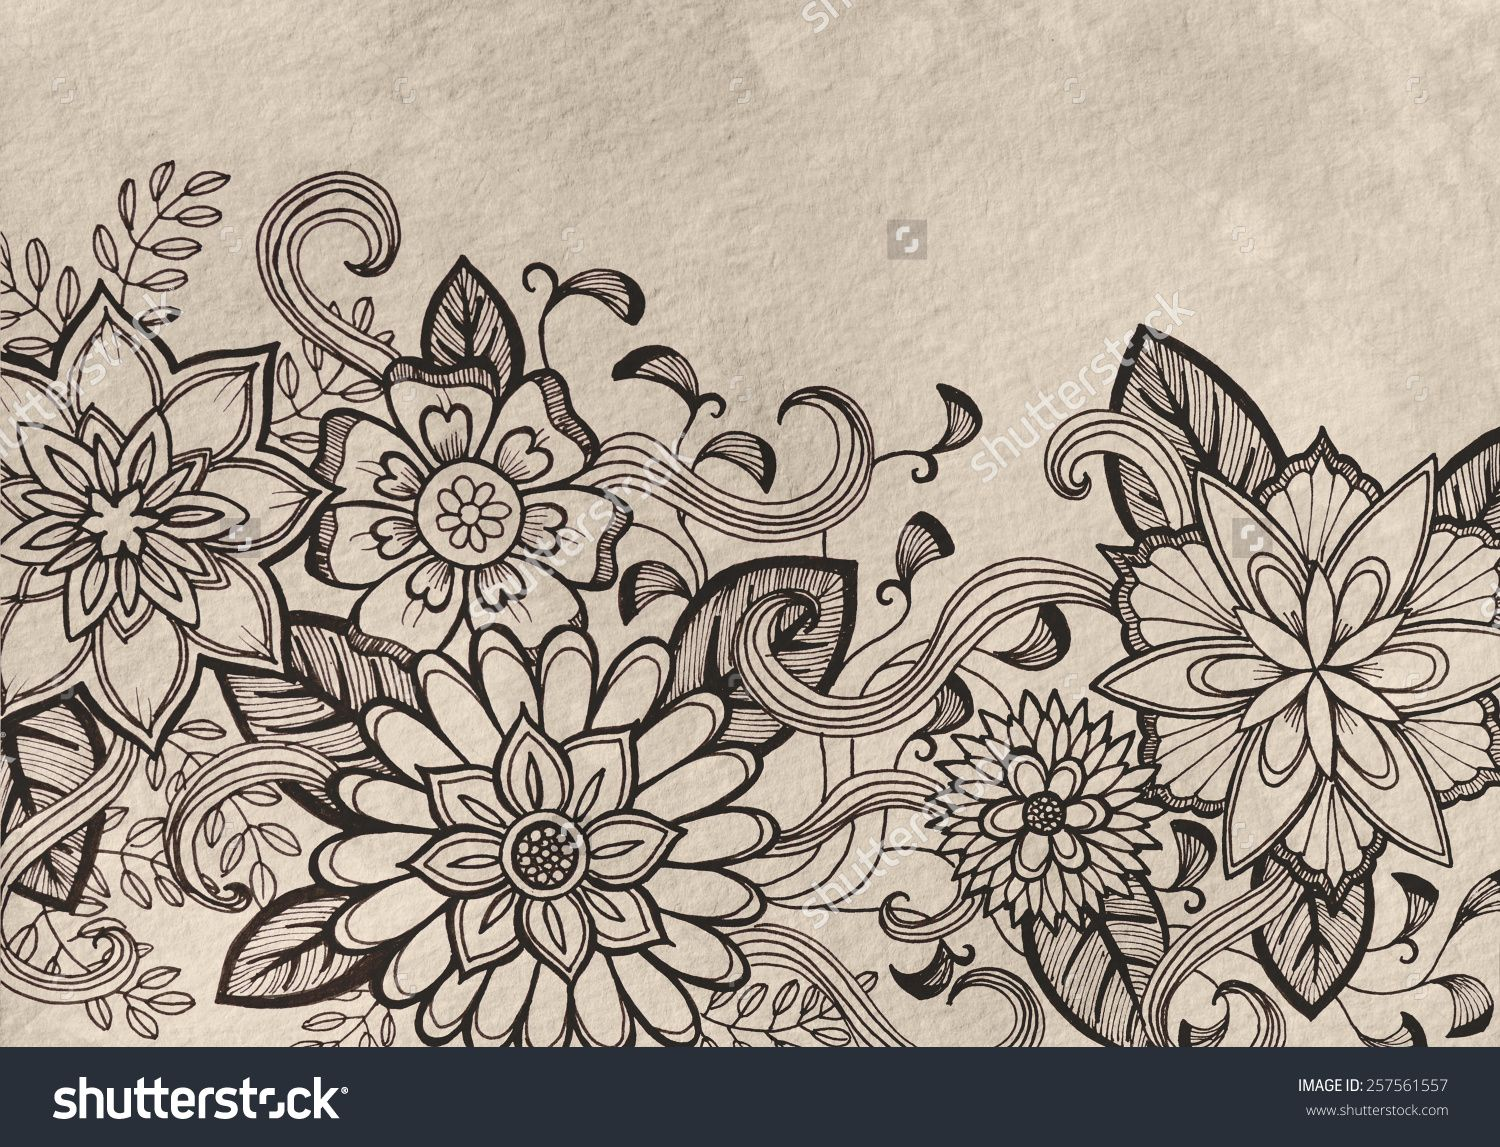 Black And White Line Drawing Flower : Cute flower designs to draw flowers healthy